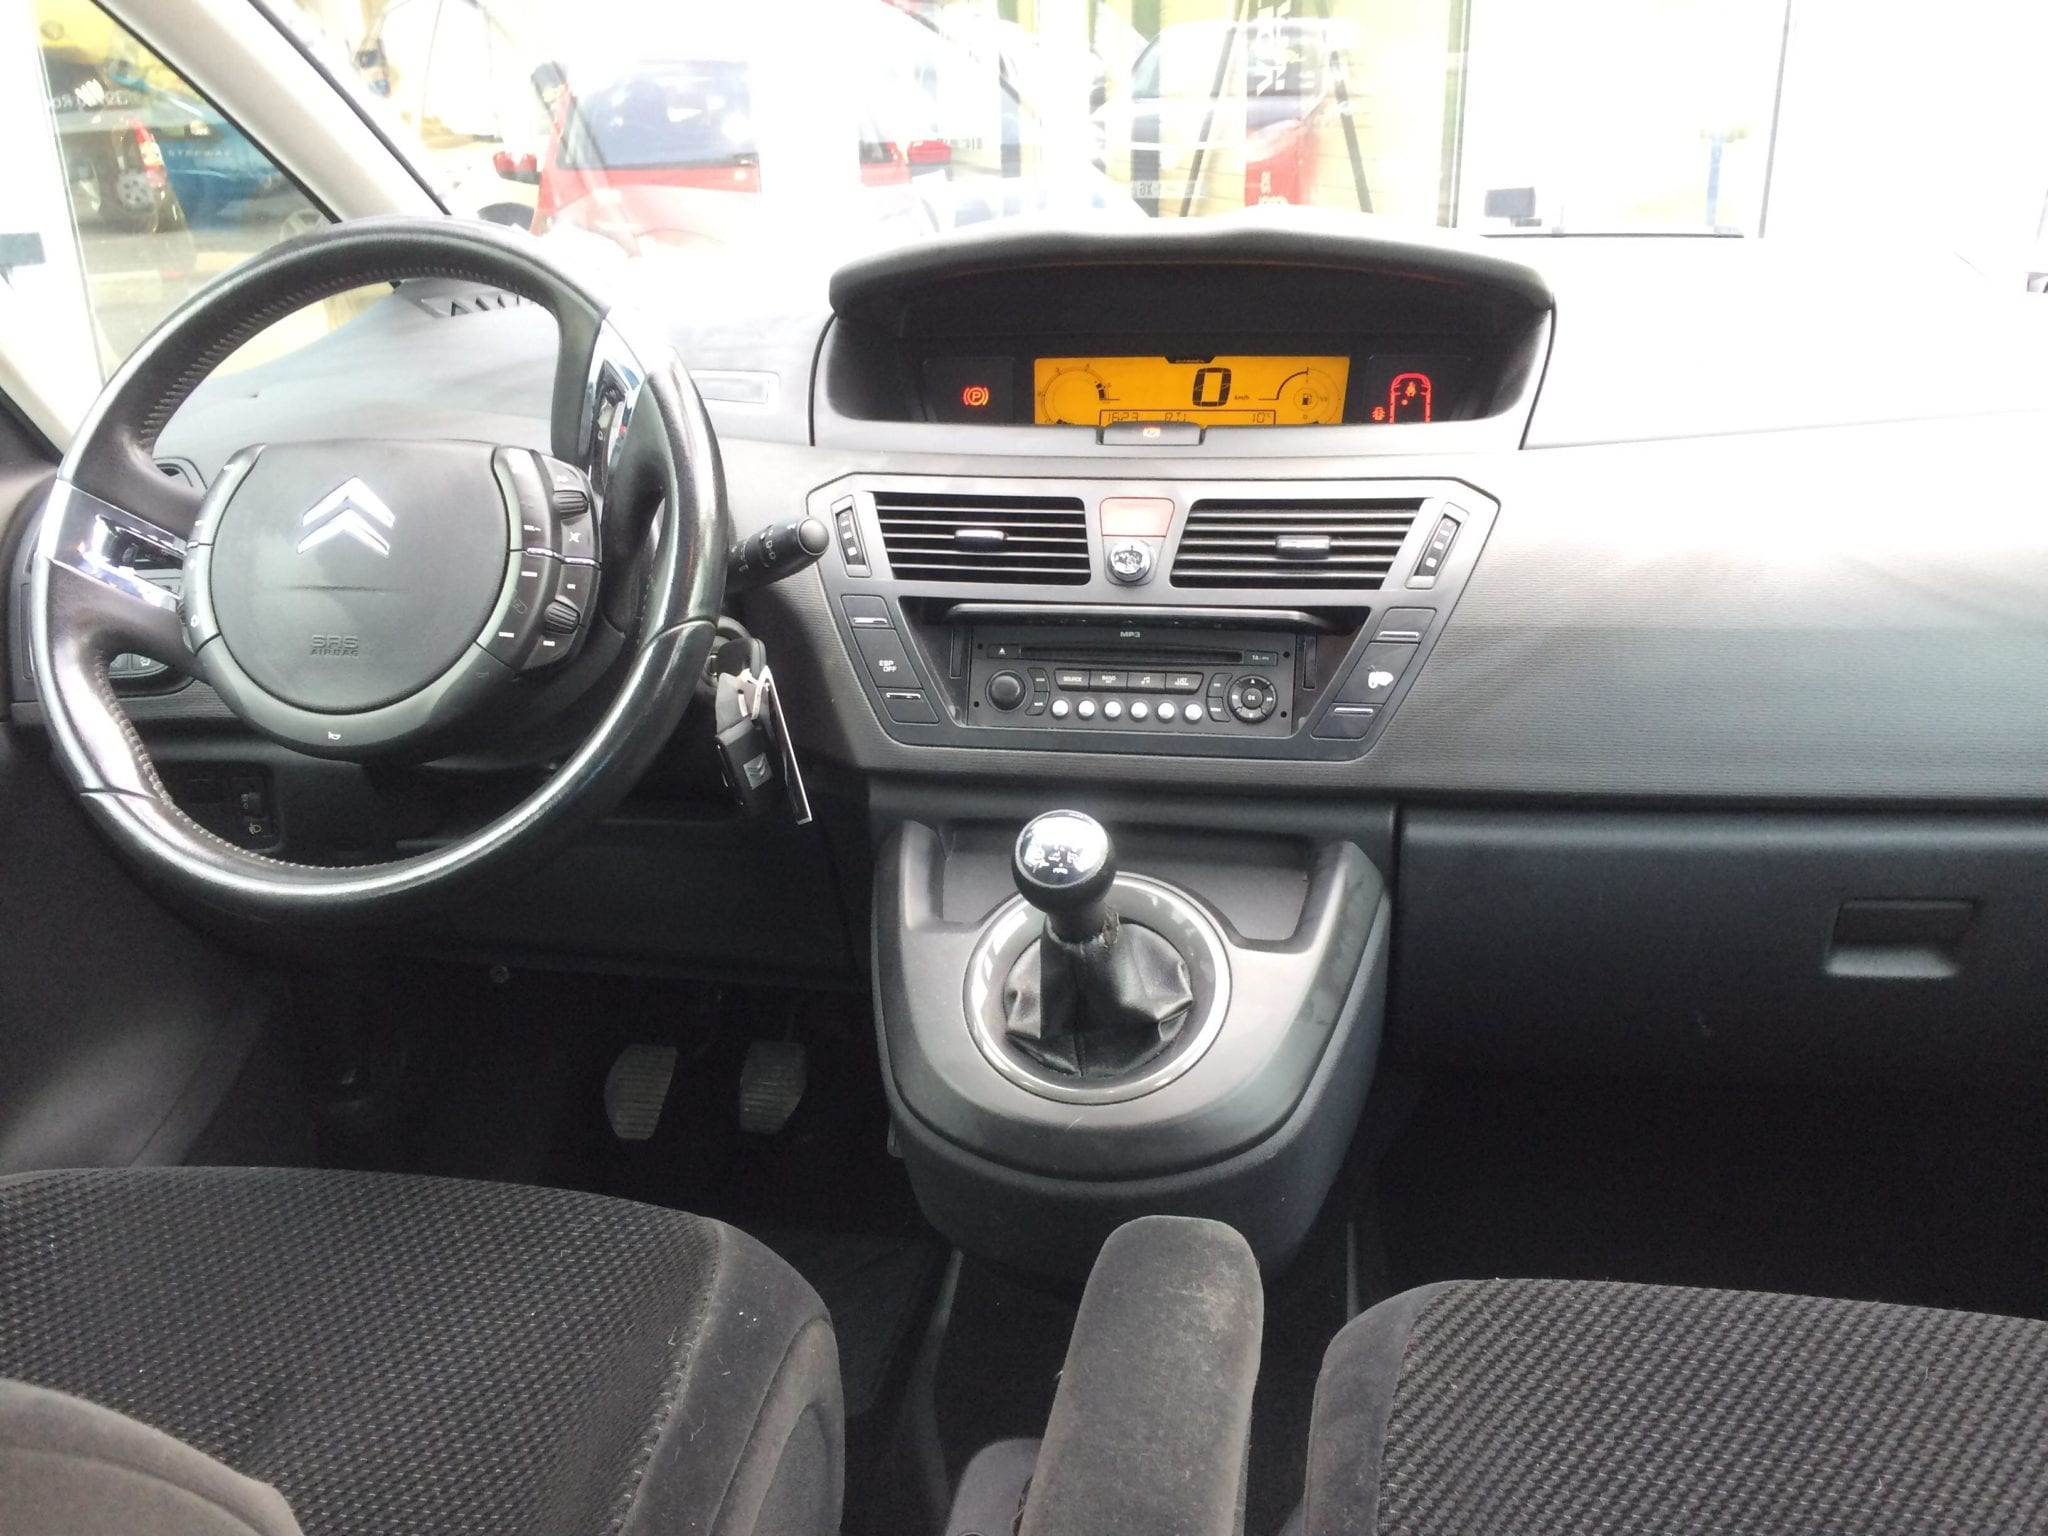 CITROEN C4 PICASSO 1.6 HDI 110 PACK AMBIANCE - Image 4